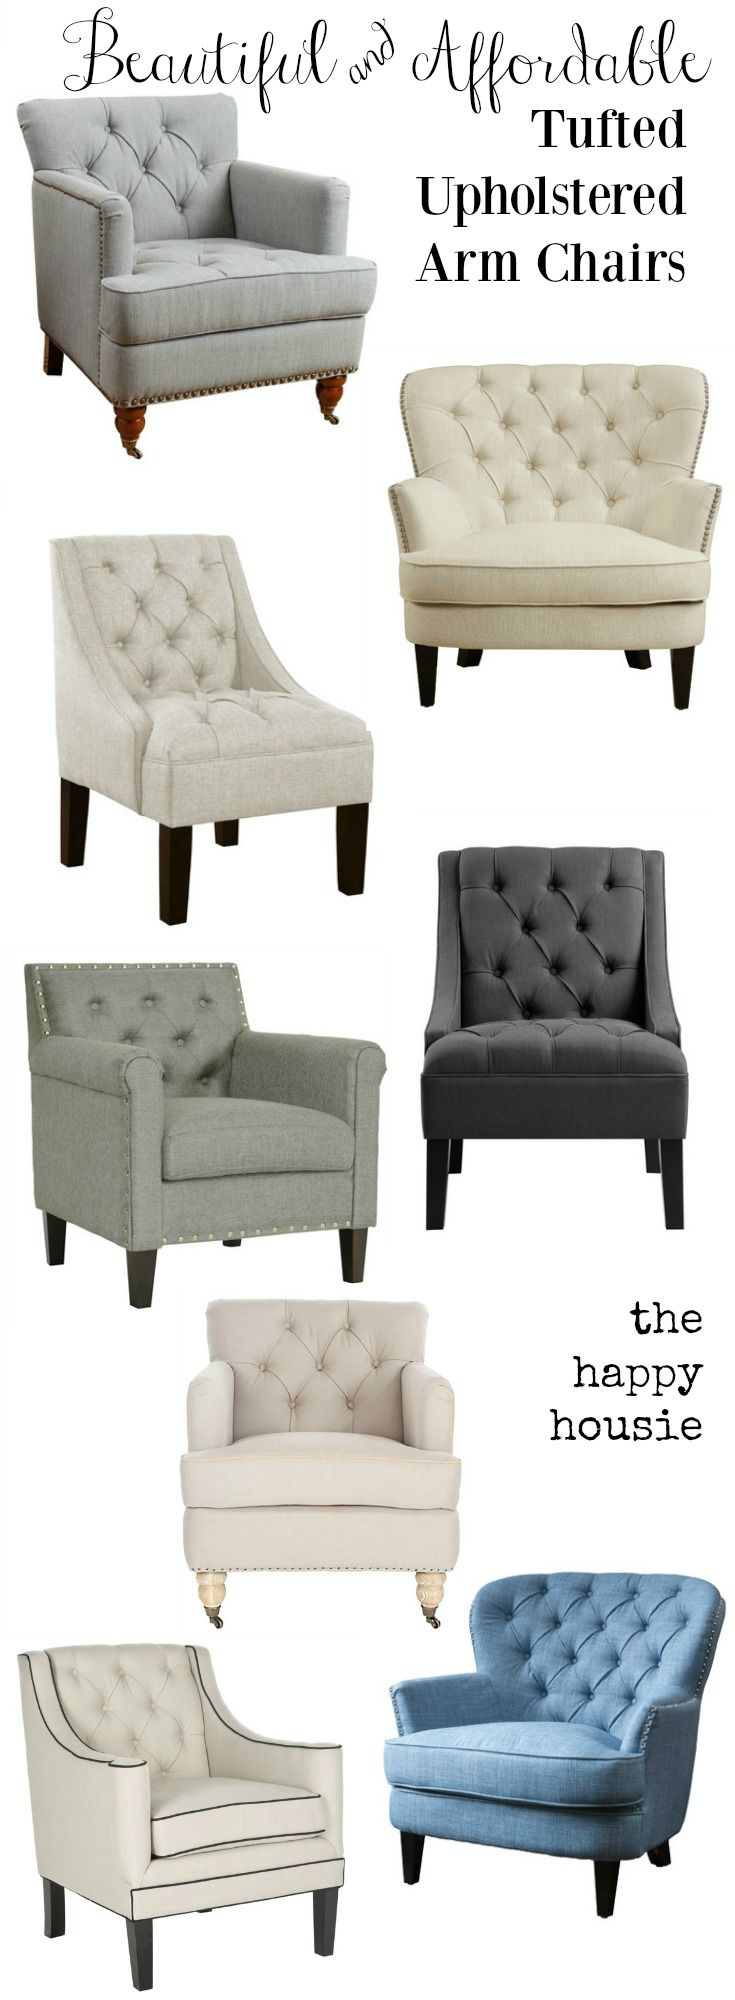 Beautiful and affordable tufted upholstered arm chairs